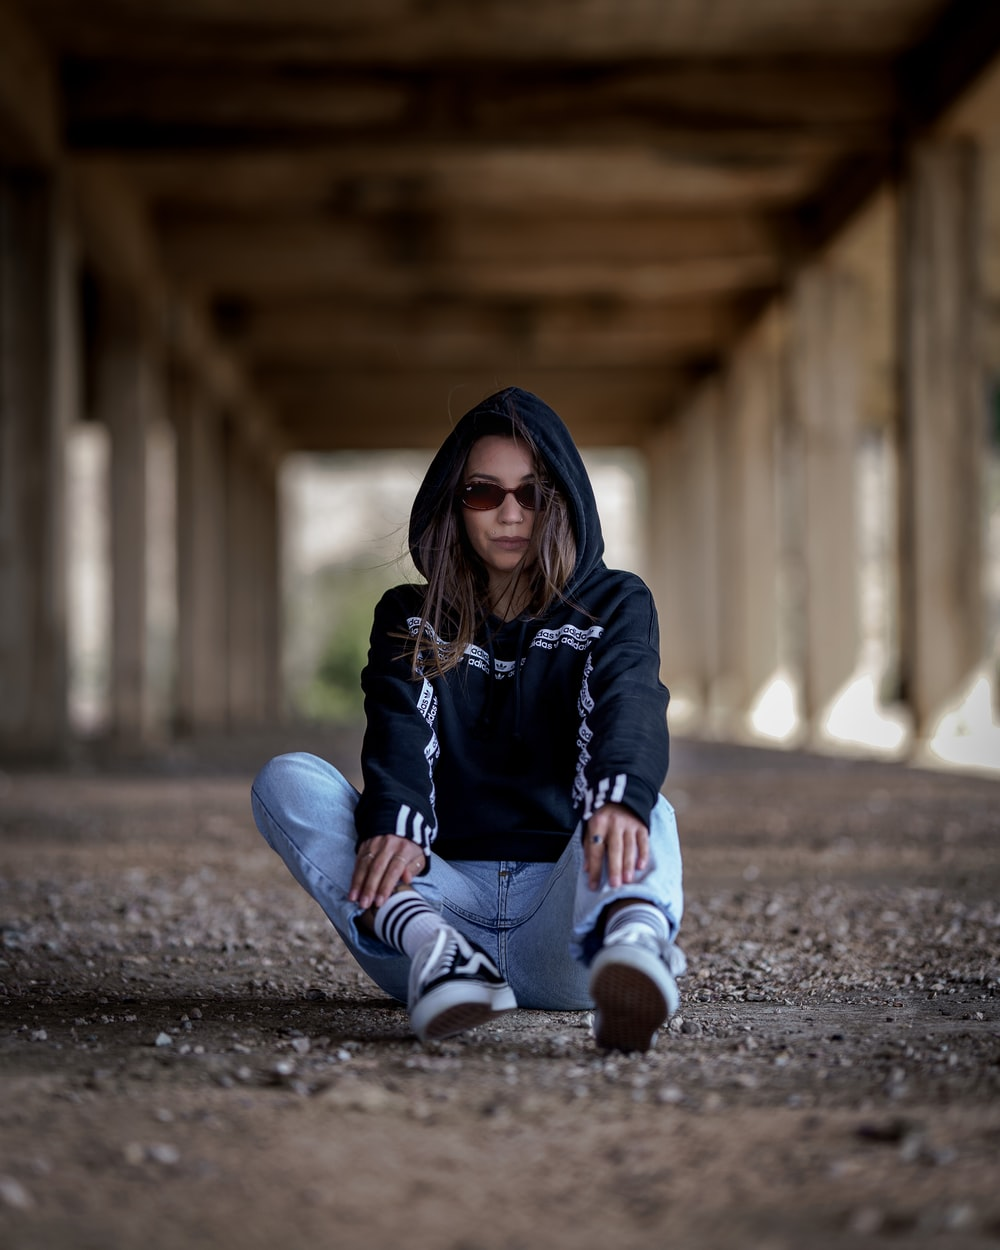 woman in black hoodie and blue denim jeans sitting on ground